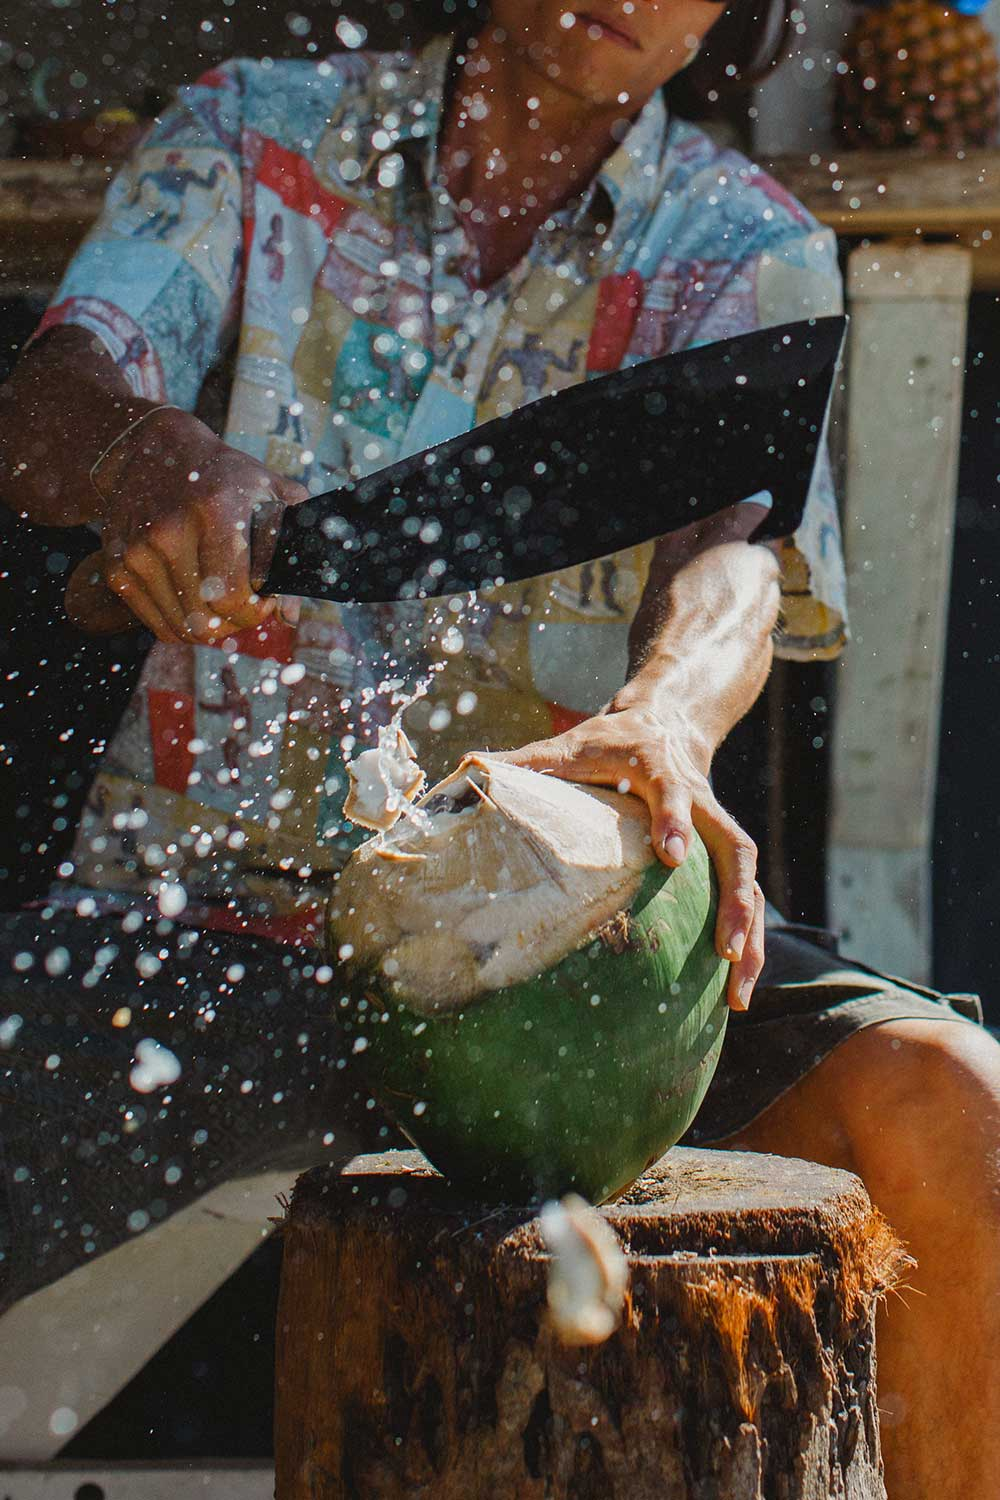 man chopping top of coconut and juice flying in air